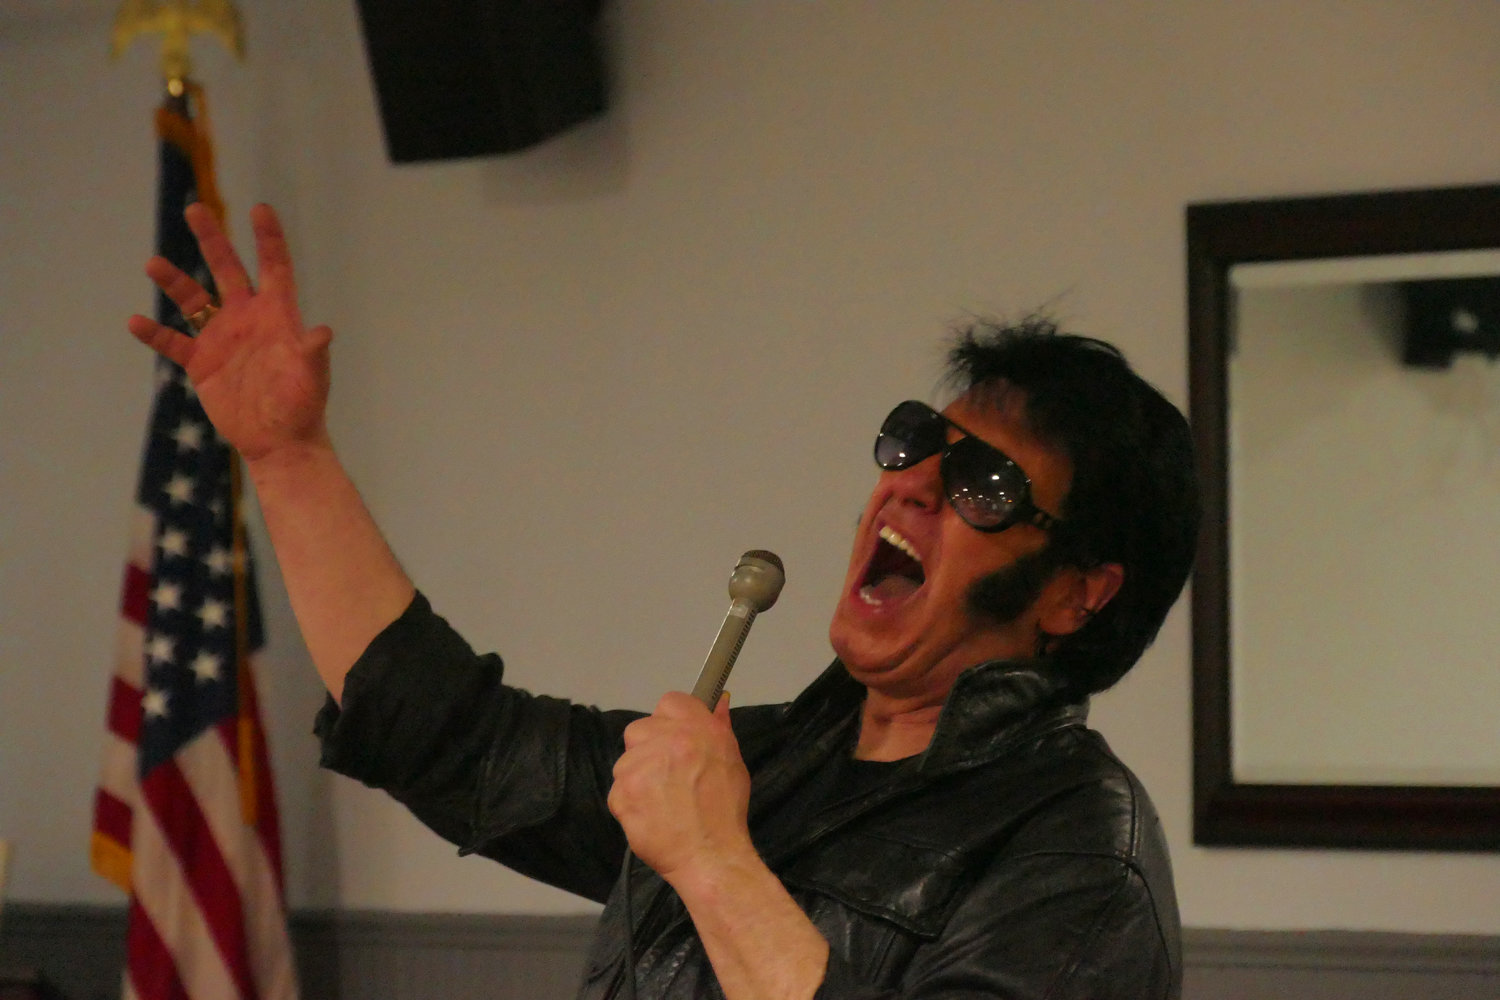 Elvis tribute artist Steve Mitchell rocked the house at Oceanside Veterans of Foreign Wars Post No. 5199 on Sunday with a special concert.